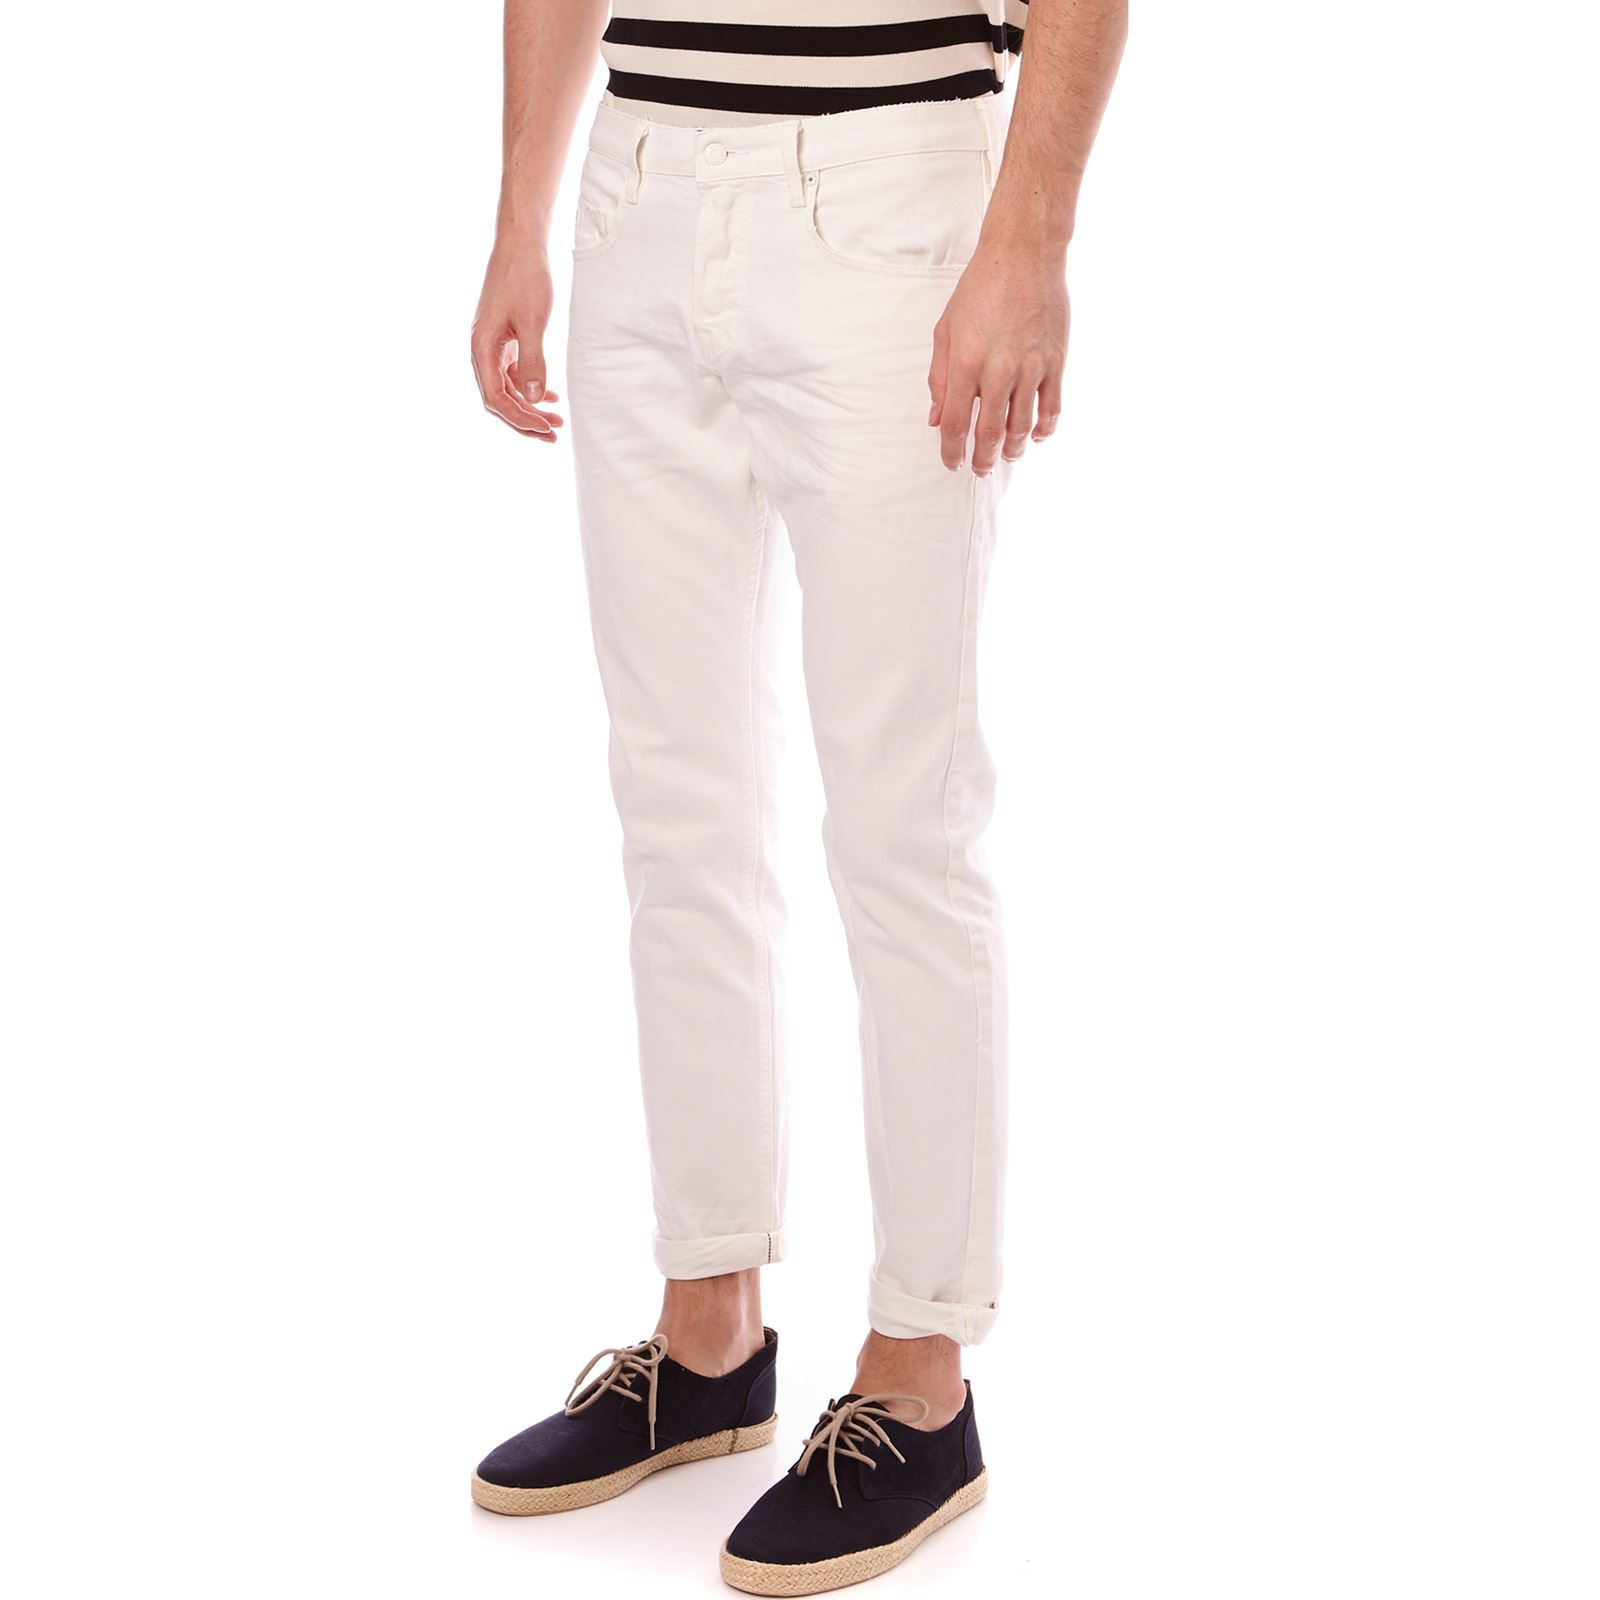 Jean Droit Scotch amp; Blanc Soda wgxROqX